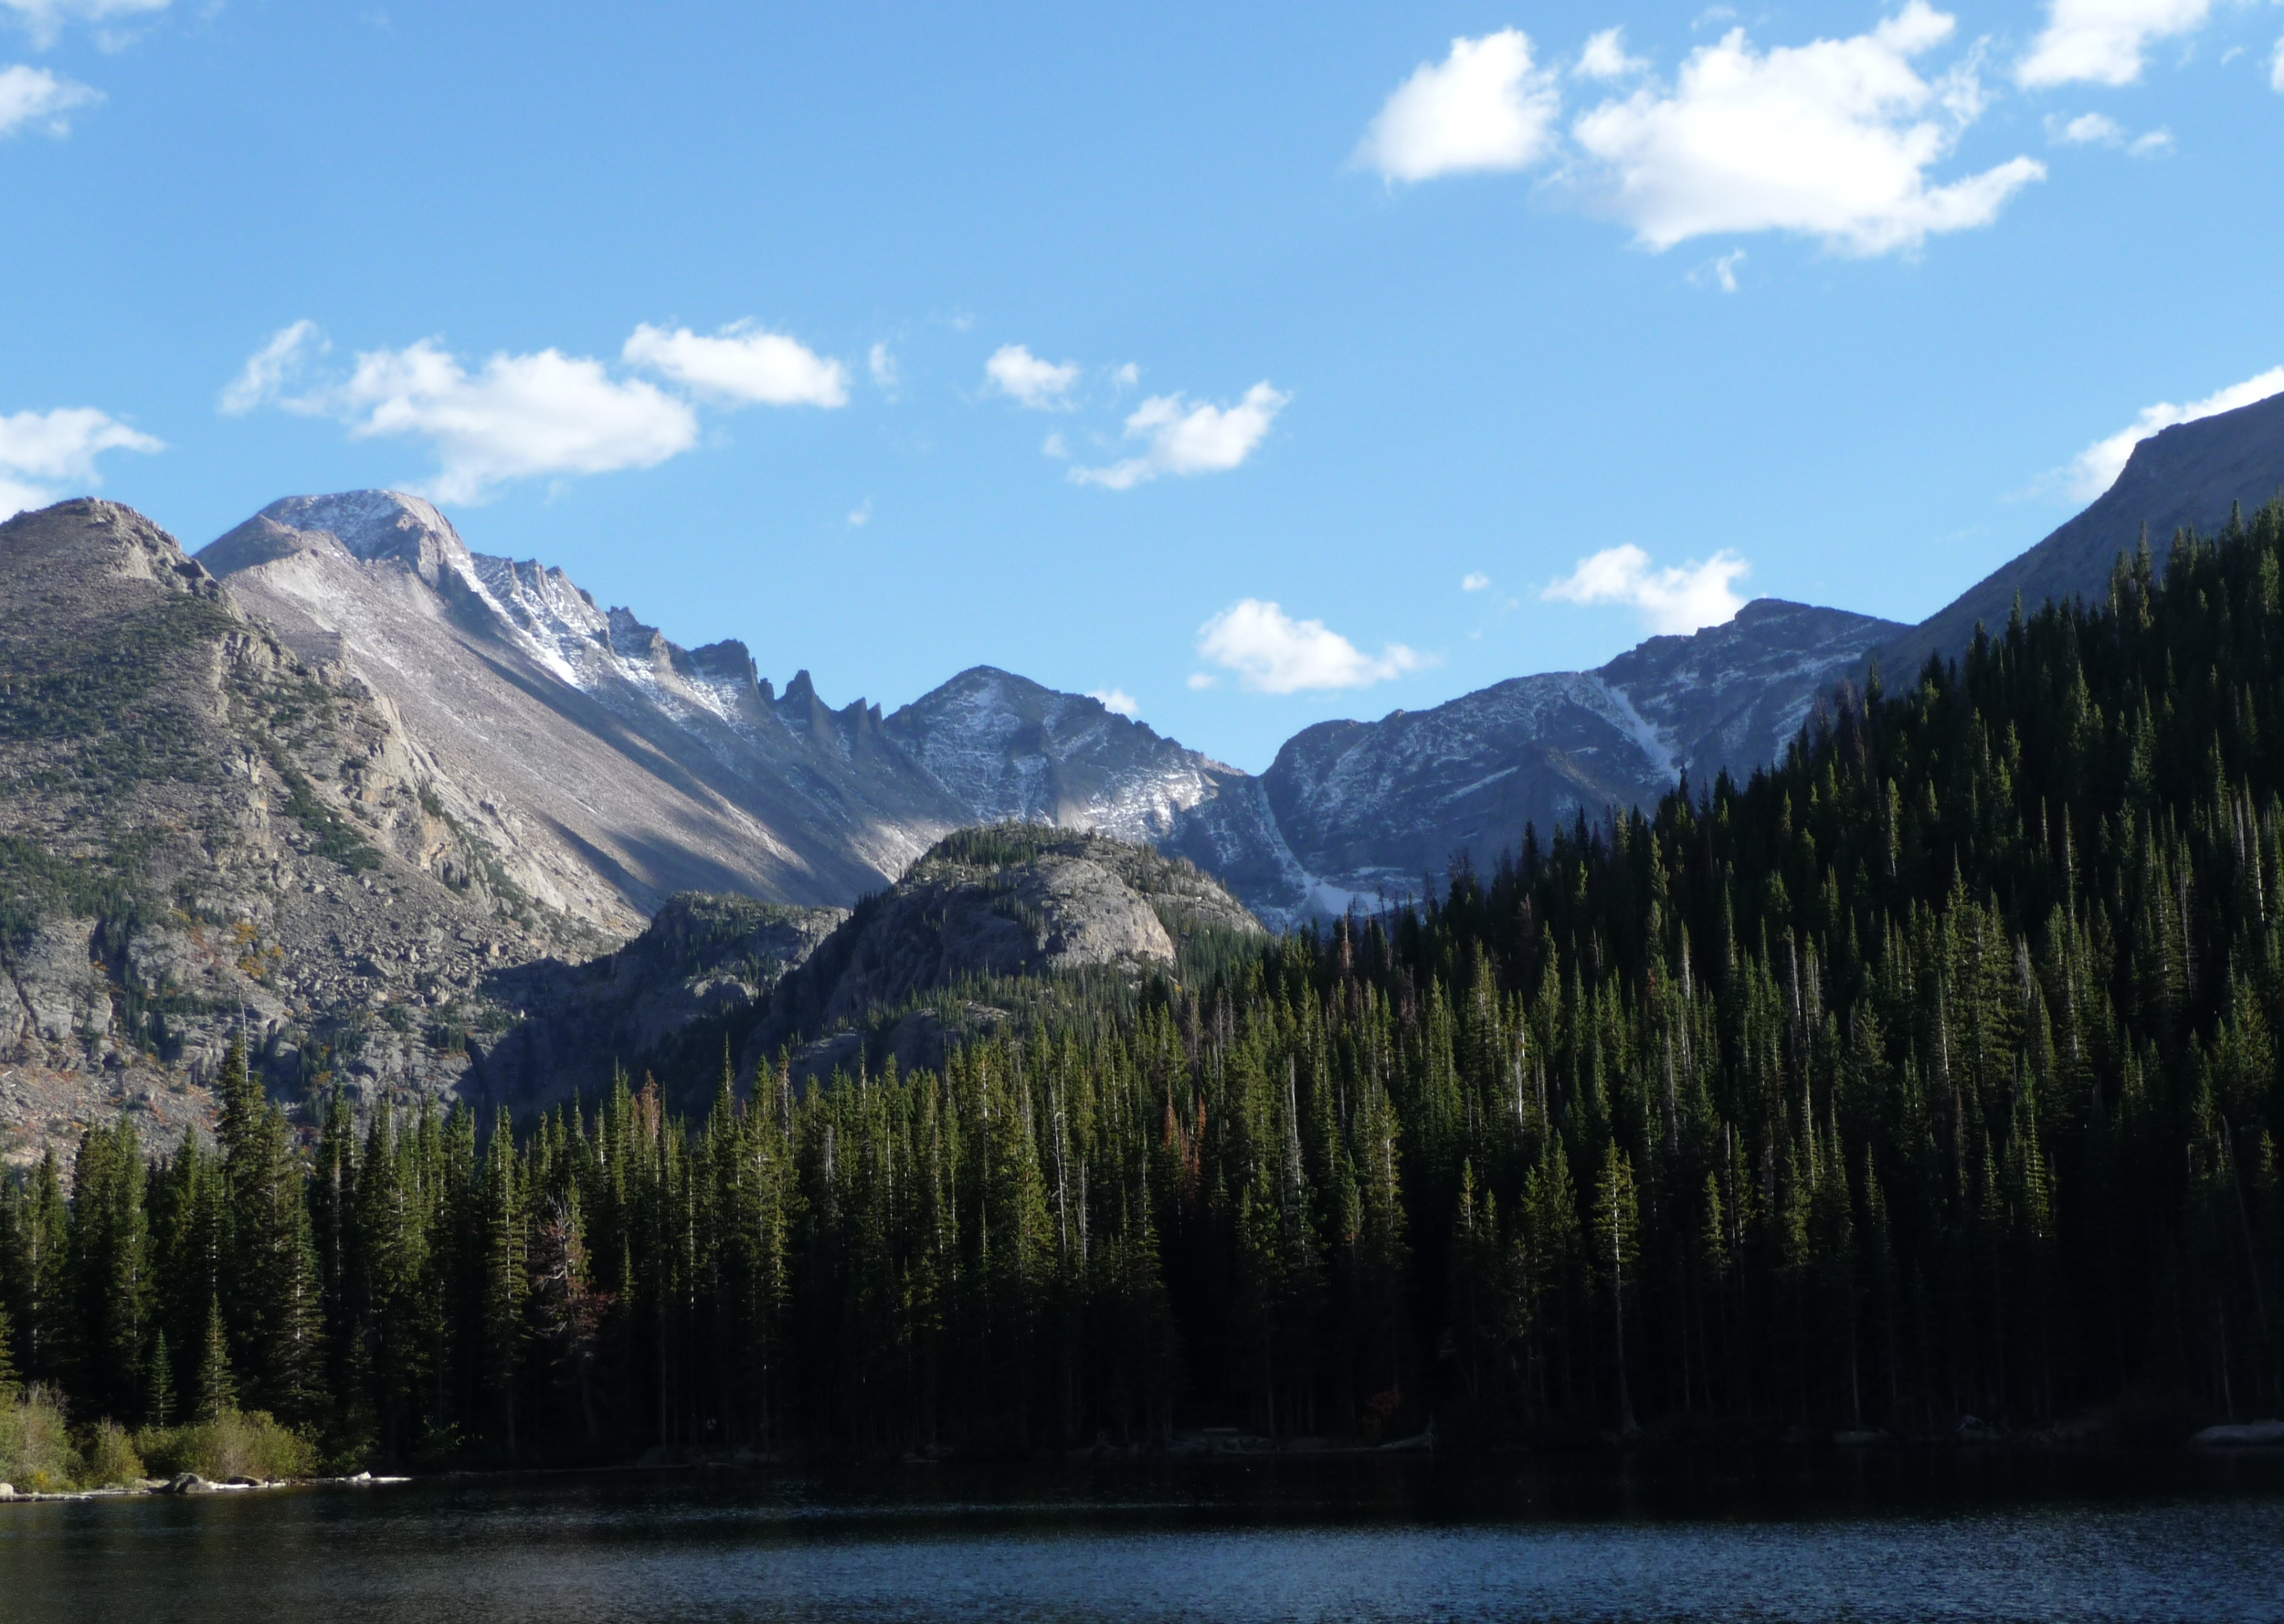 Rocky Mountain National Park has benefited from the Land and Water Conservation Fund.